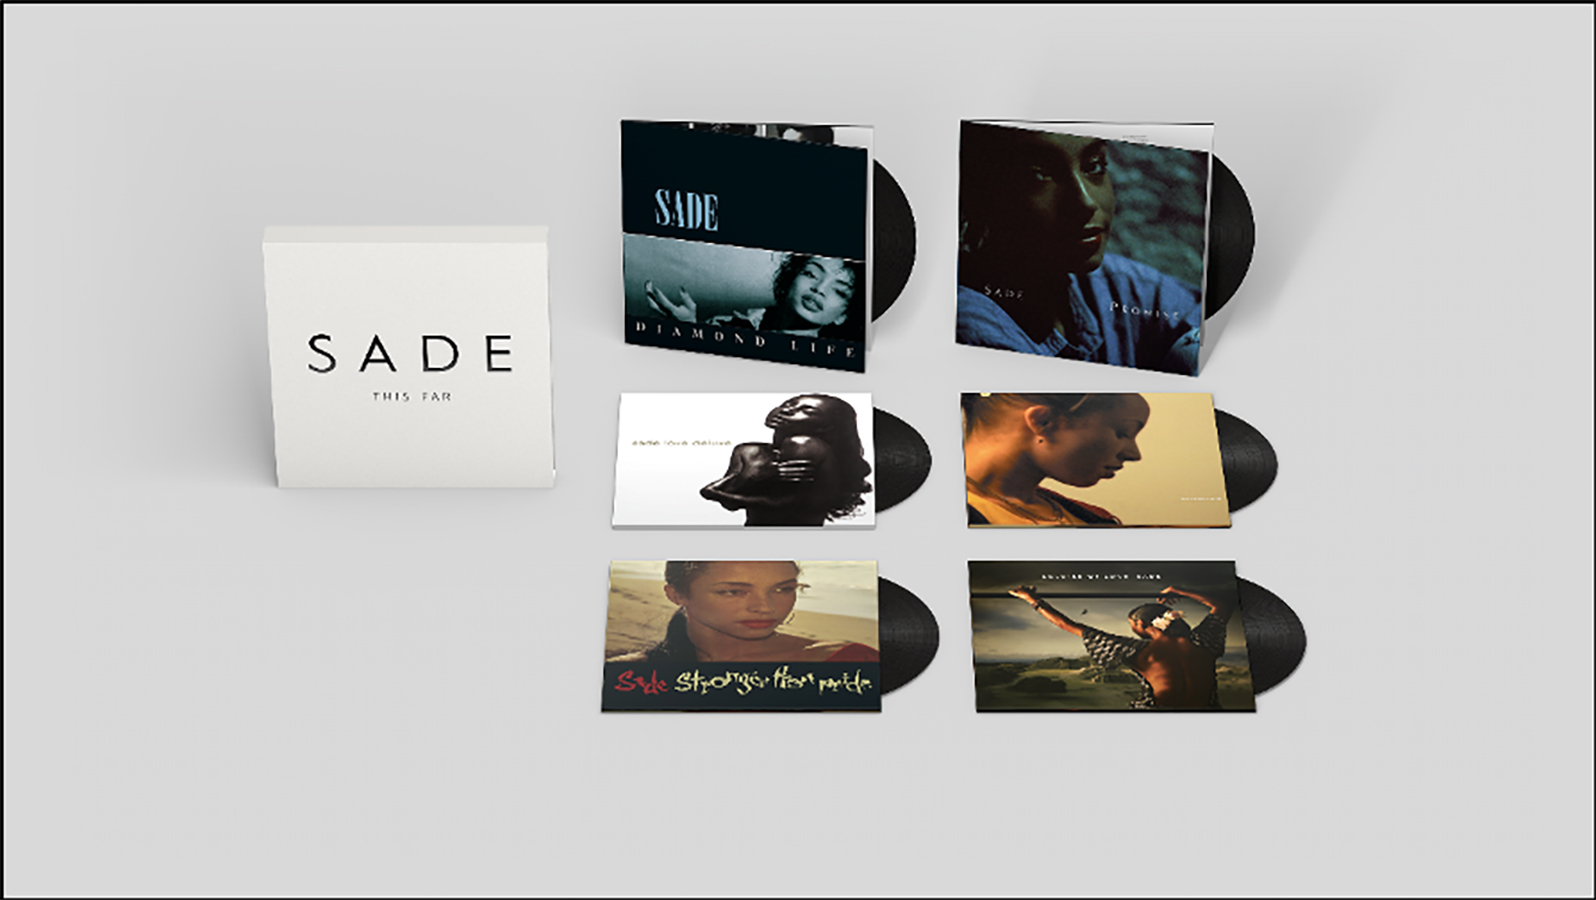 Sade Six Album Vinyl Box Set 'This Far' Announced Released 9th October 2020 On Sony Music